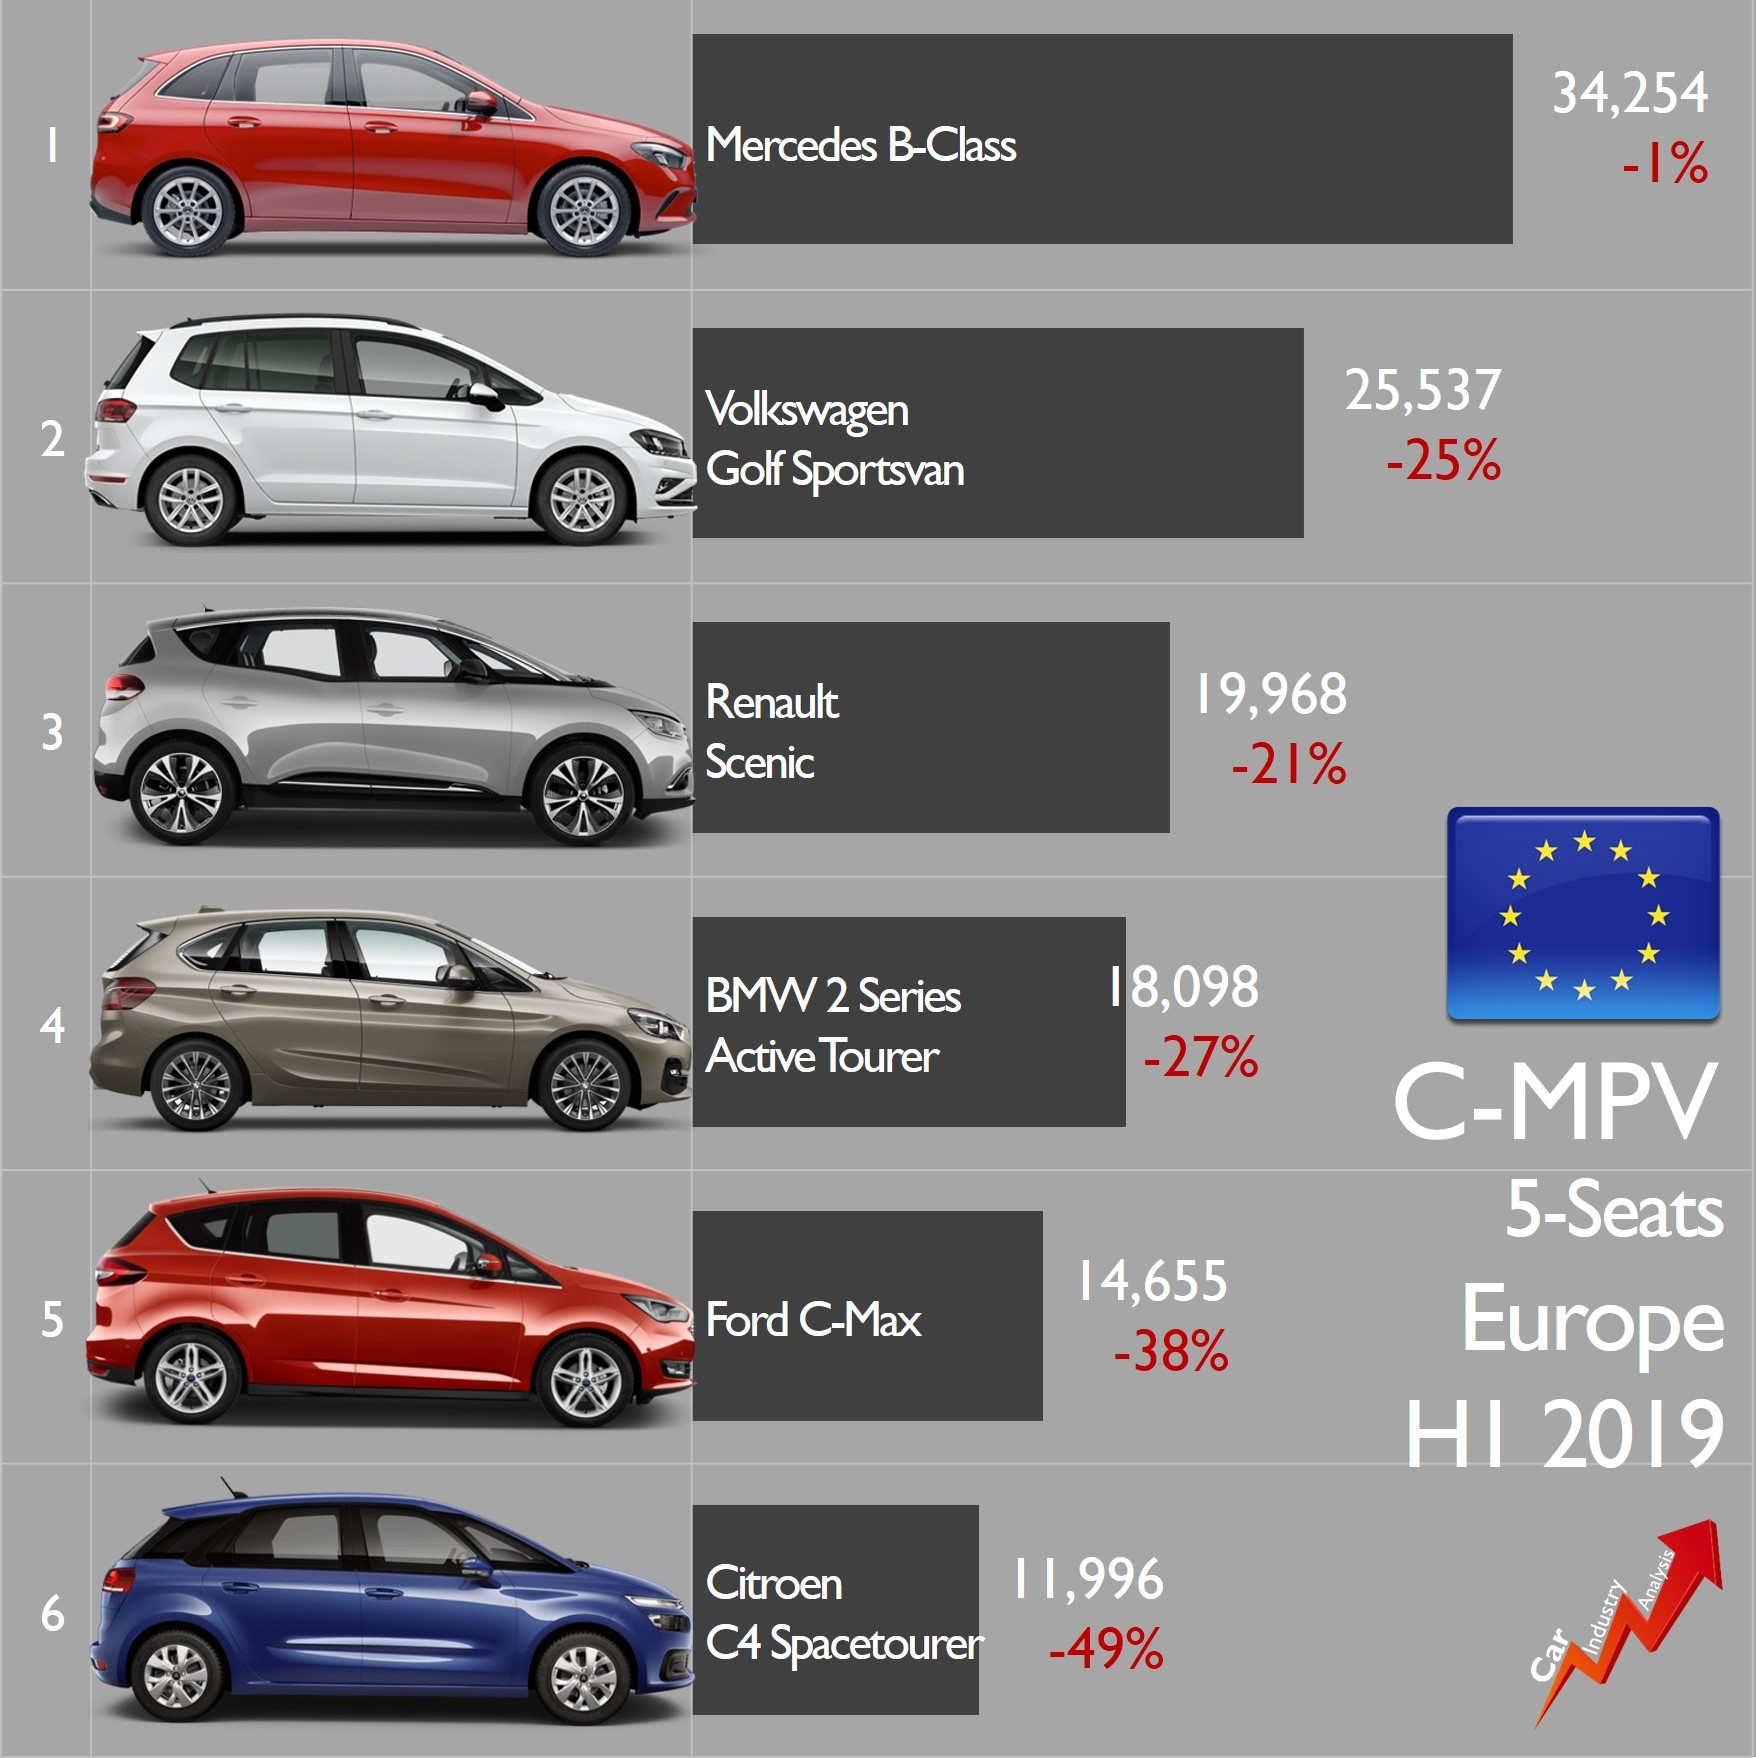 2019 Fiat 500l: Europe H1-19: FCA Triples The Volume Sold By VW Group In